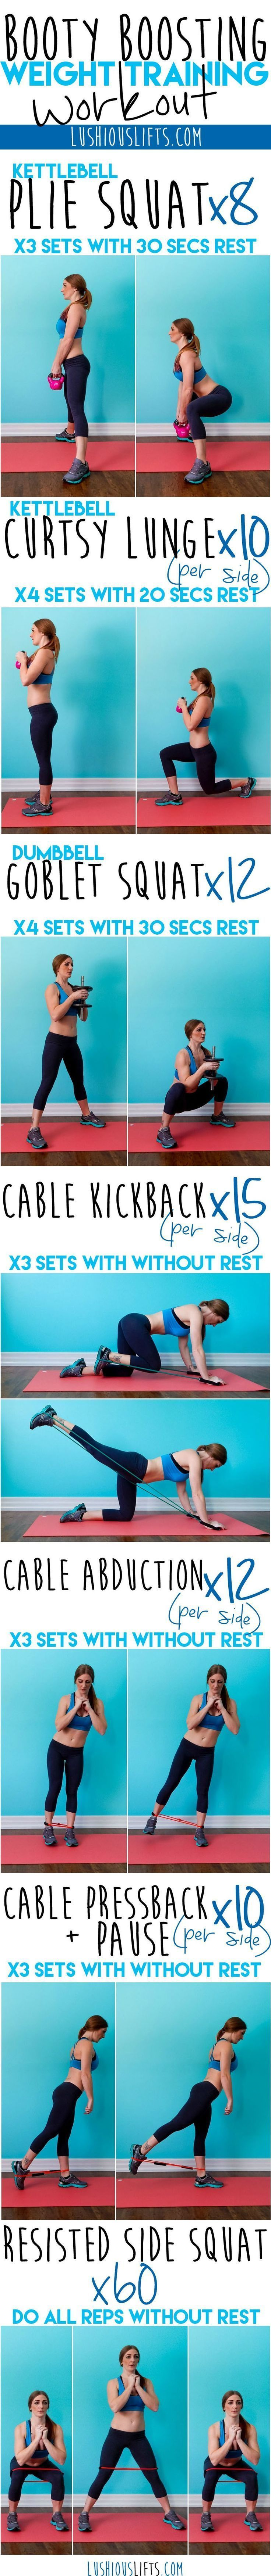 Booty Workout and Exercise to lose weight: For a great full body workout check out: http://howtoloseweightfromhome.com/free-full-body-workout-routine